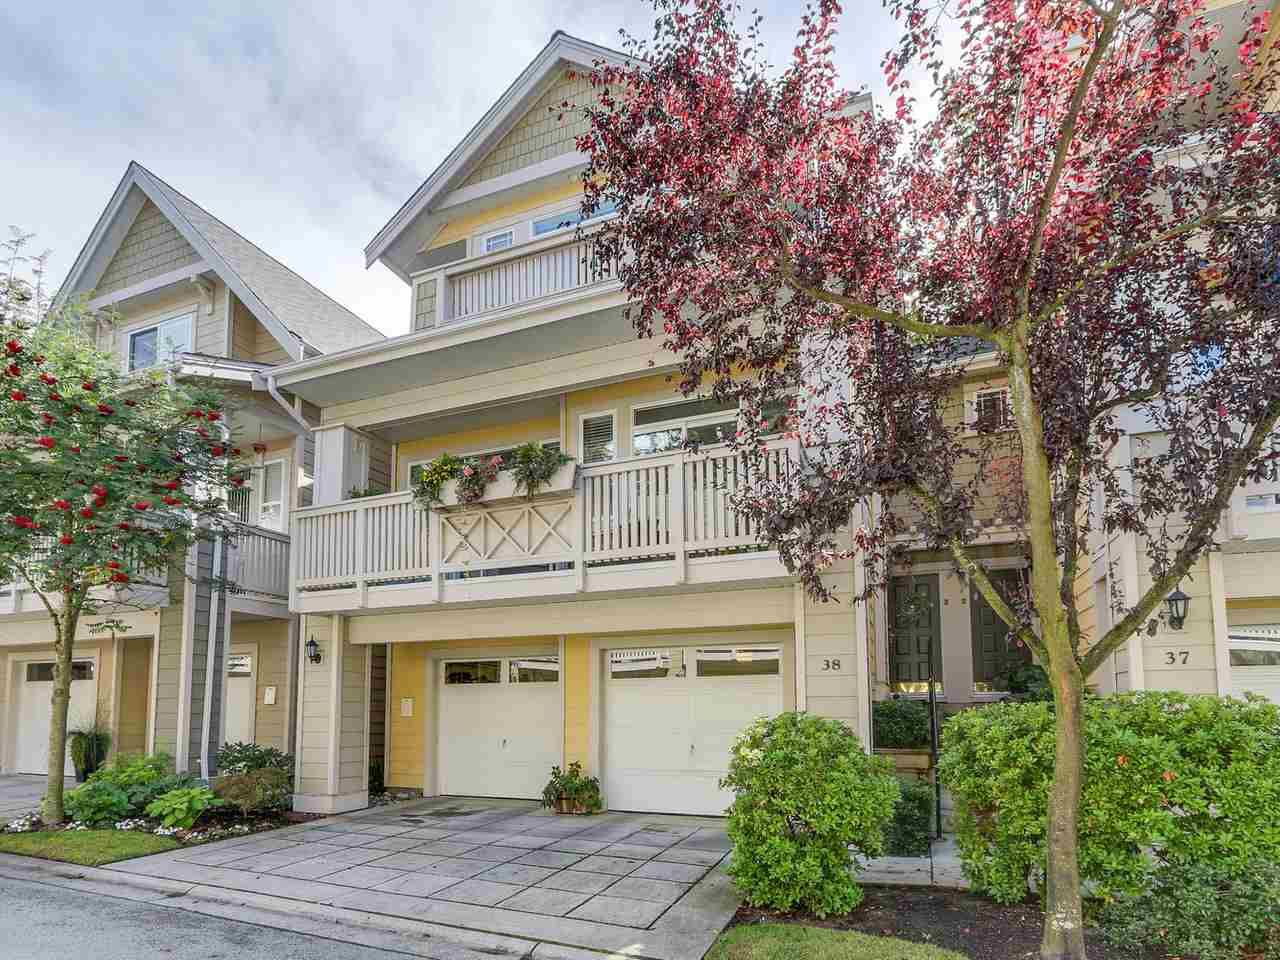 """Main Photo: 38 2588 152 Street in Surrey: King George Corridor Townhouse for sale in """"Woodgrove"""" (South Surrey White Rock)  : MLS®# R2130103"""